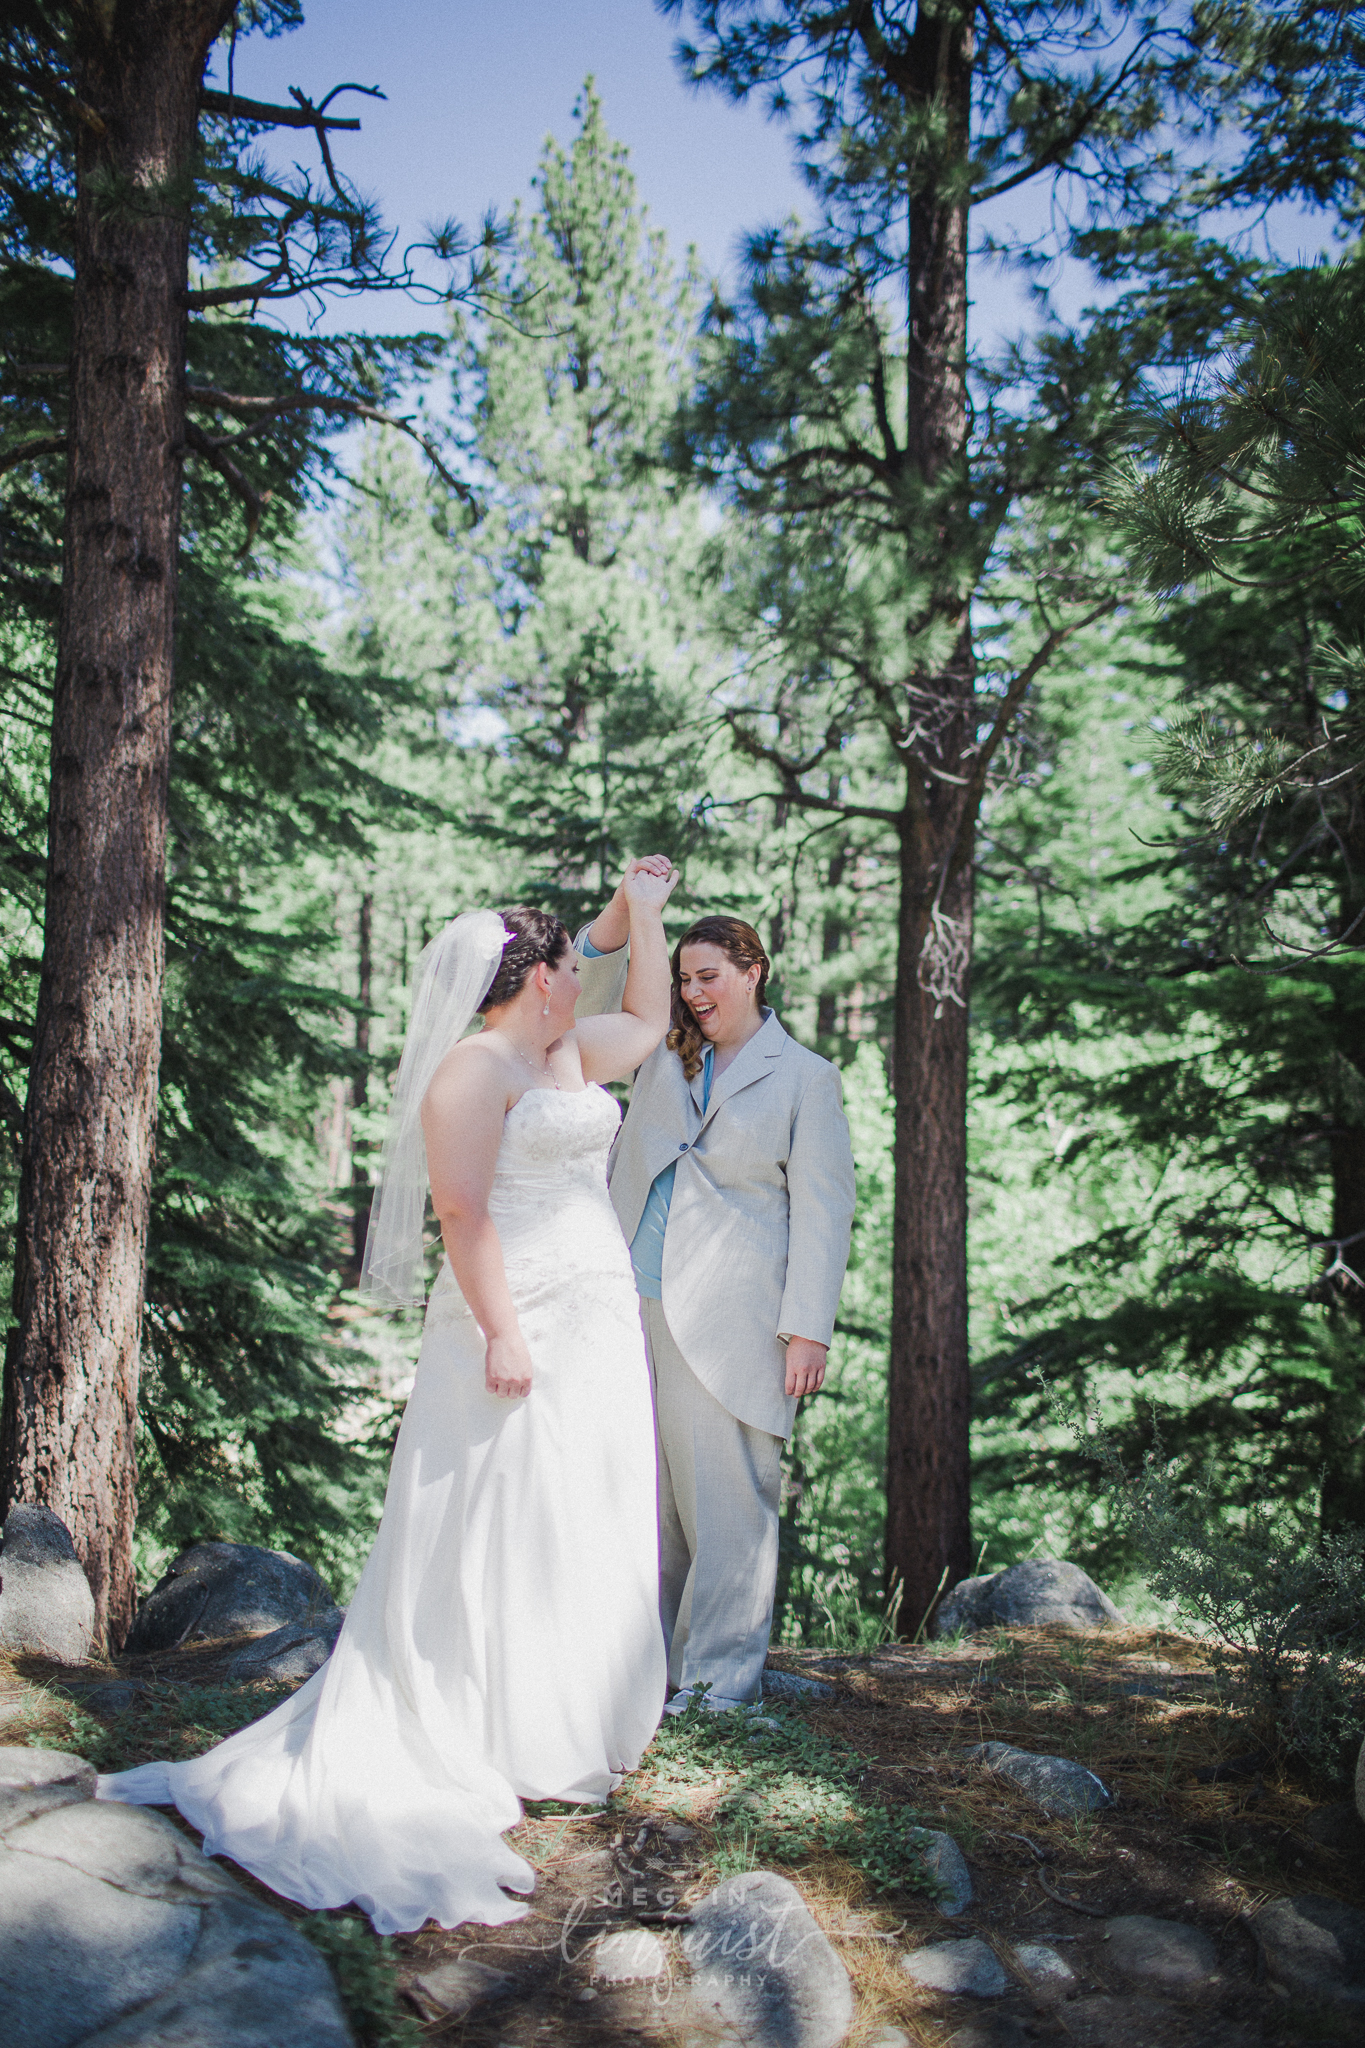 same-sex-wedding-reno-lake-tahoe-wedding-photographer-14.jpg